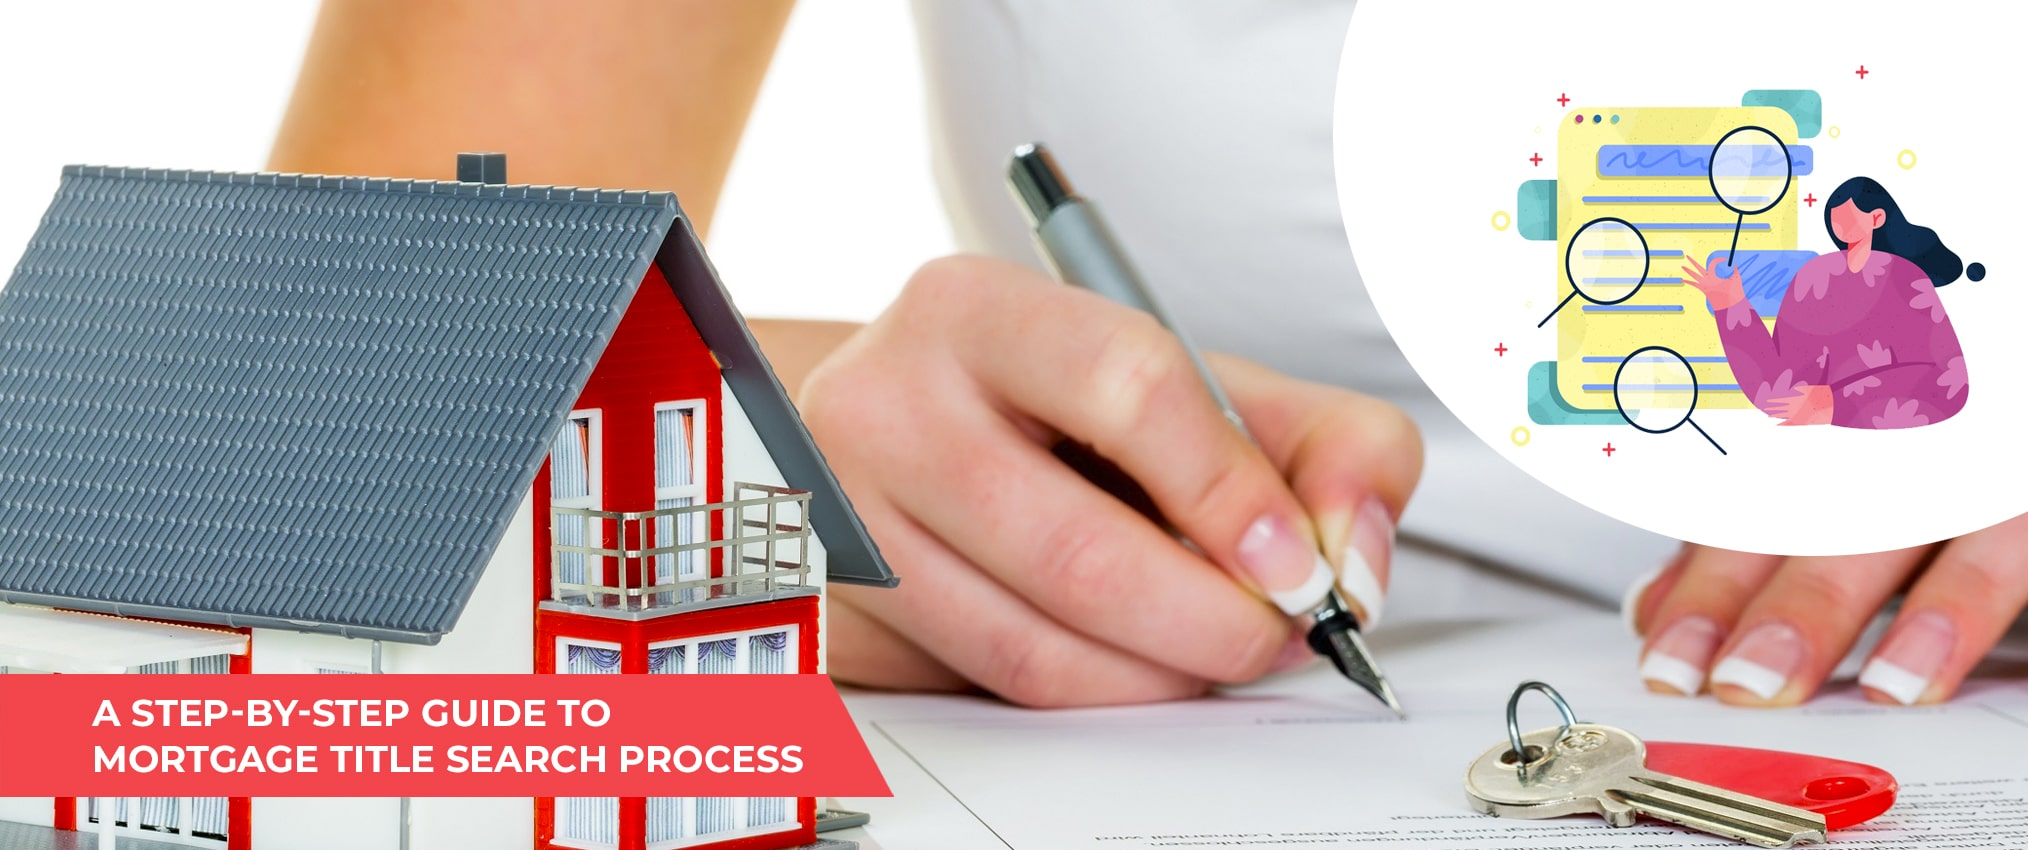 mortgage title search process